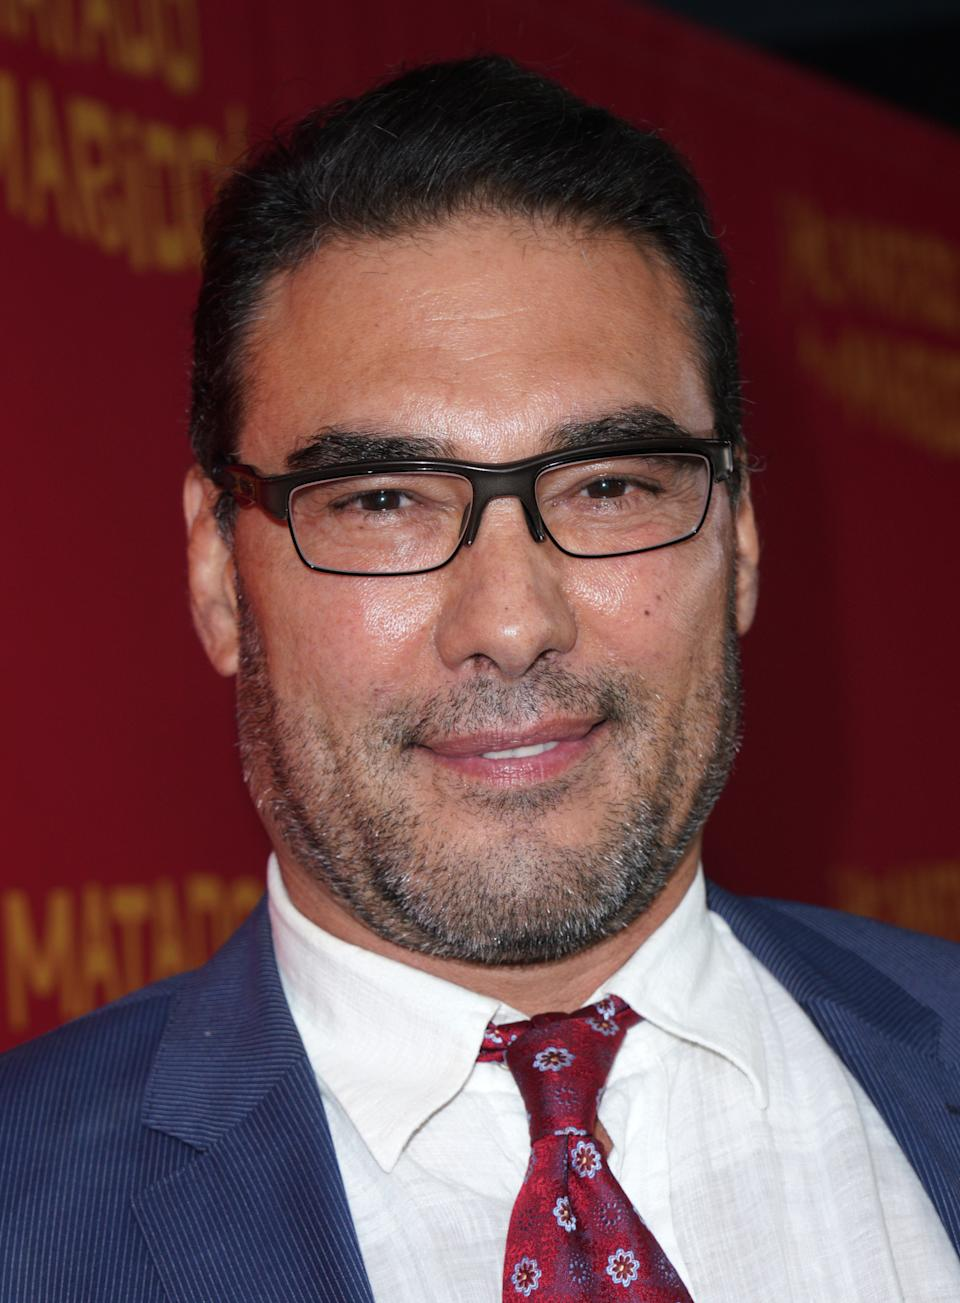 Eduardo Yáñez en 2019. (Photo by JC Olivera/Getty Images)